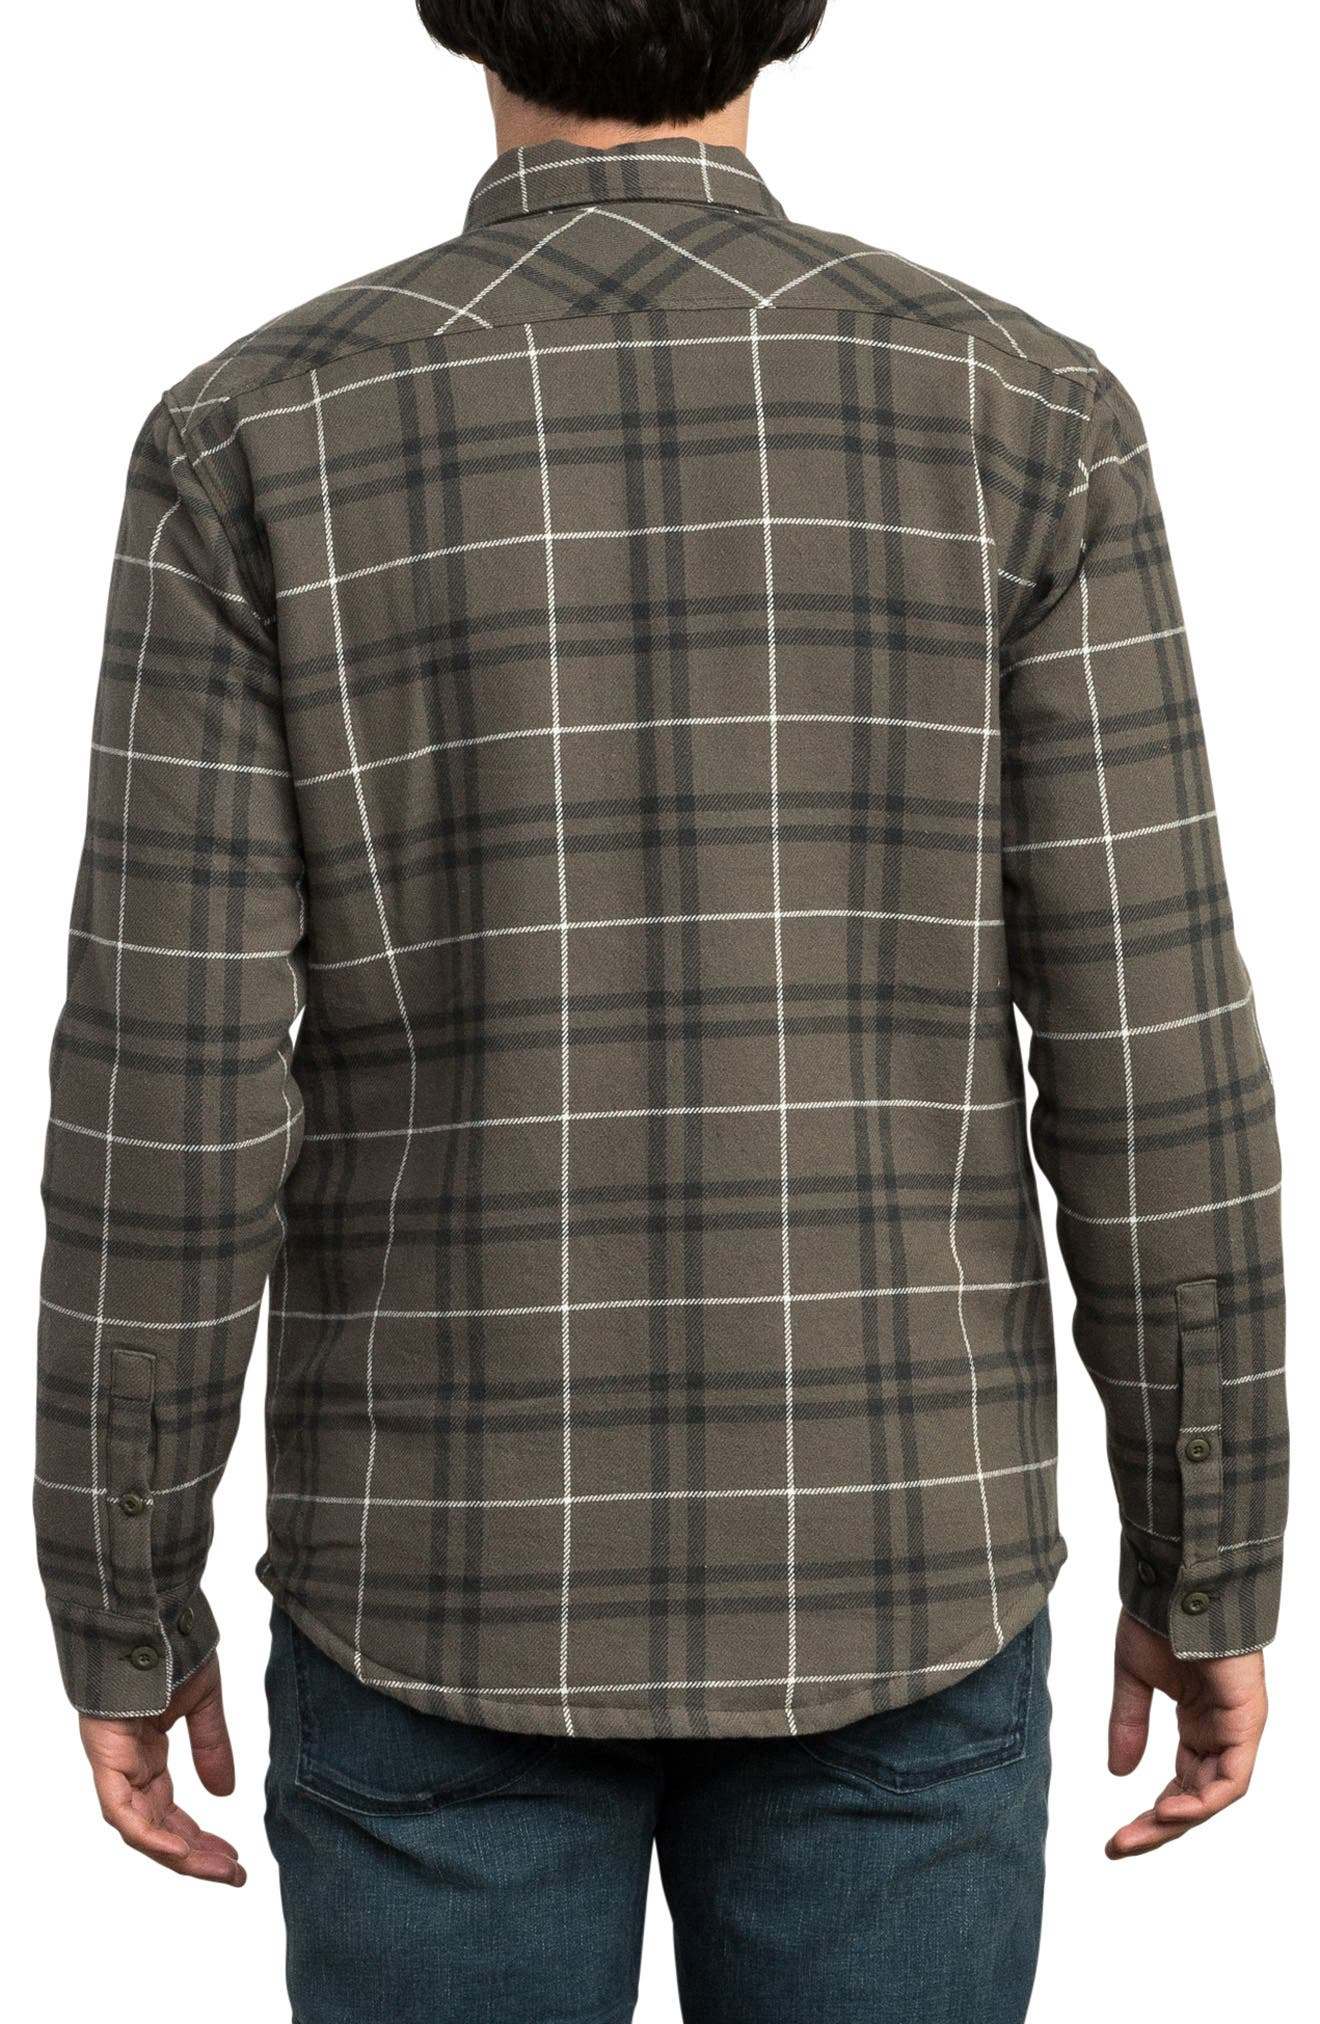 Andrew Reynolds Lined Plaid Shirt,                             Alternate thumbnail 2, color,                             OLIVE